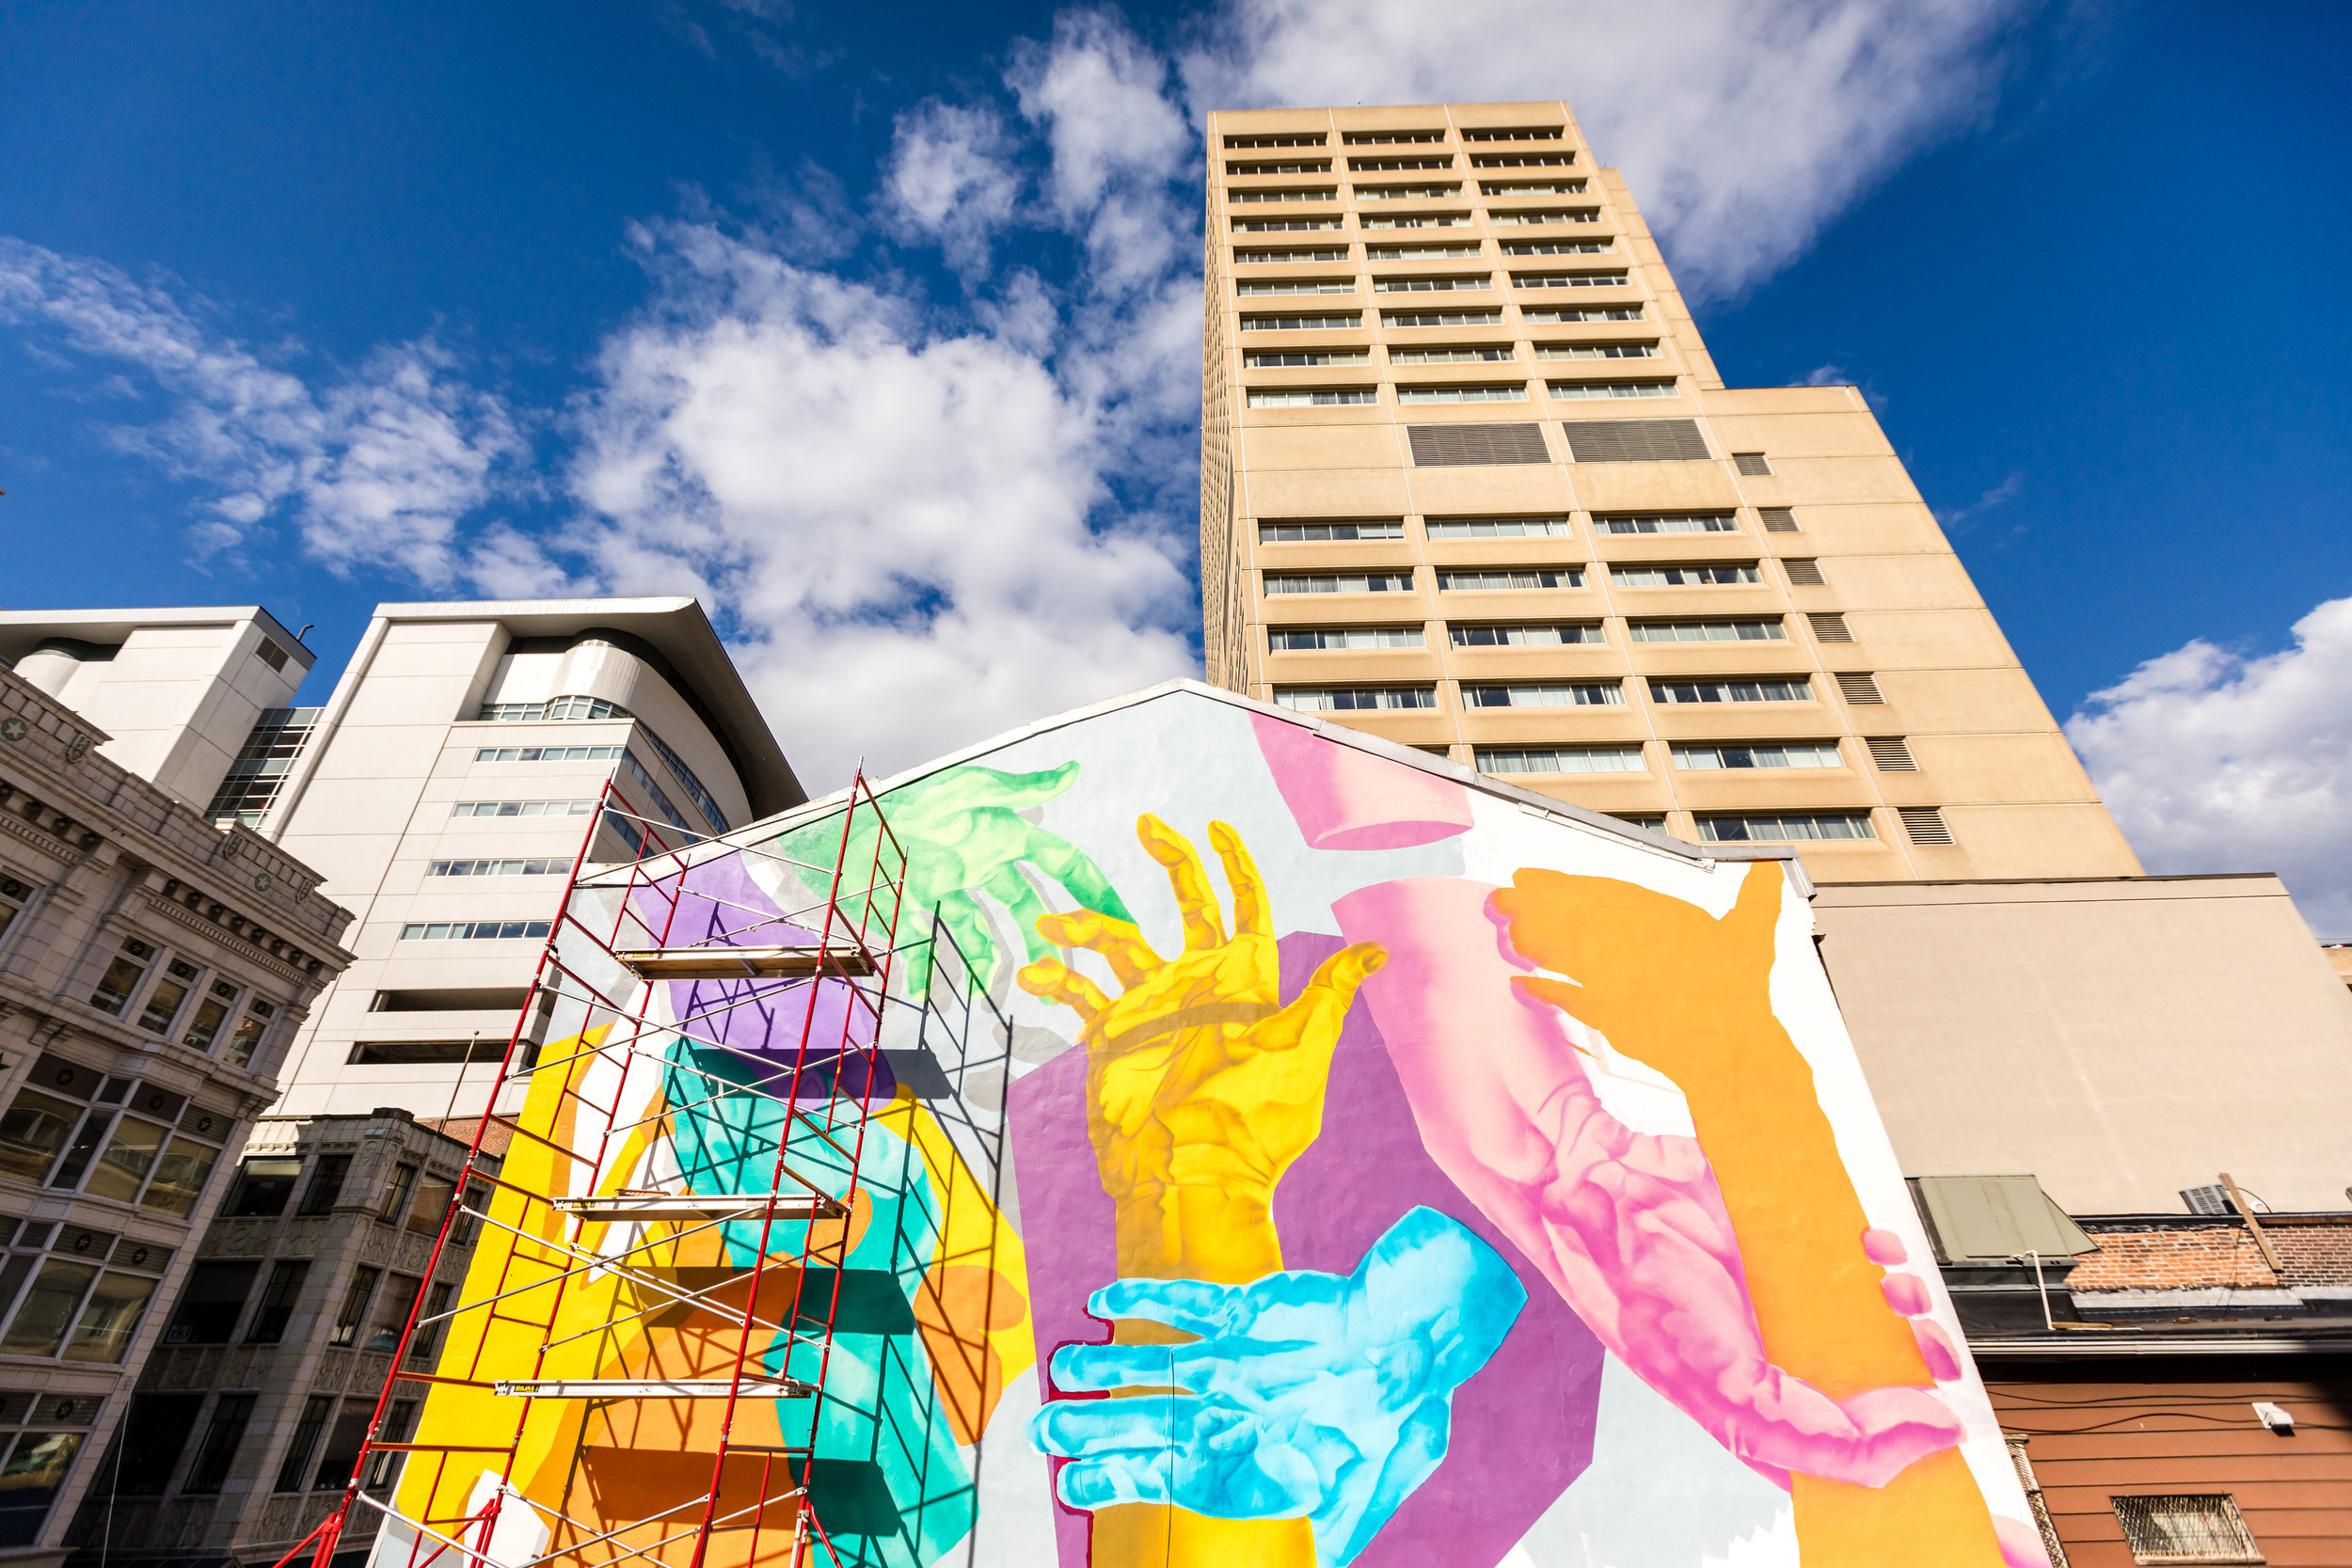 Landon_Wise_Photography_MuralFest-186.jpg